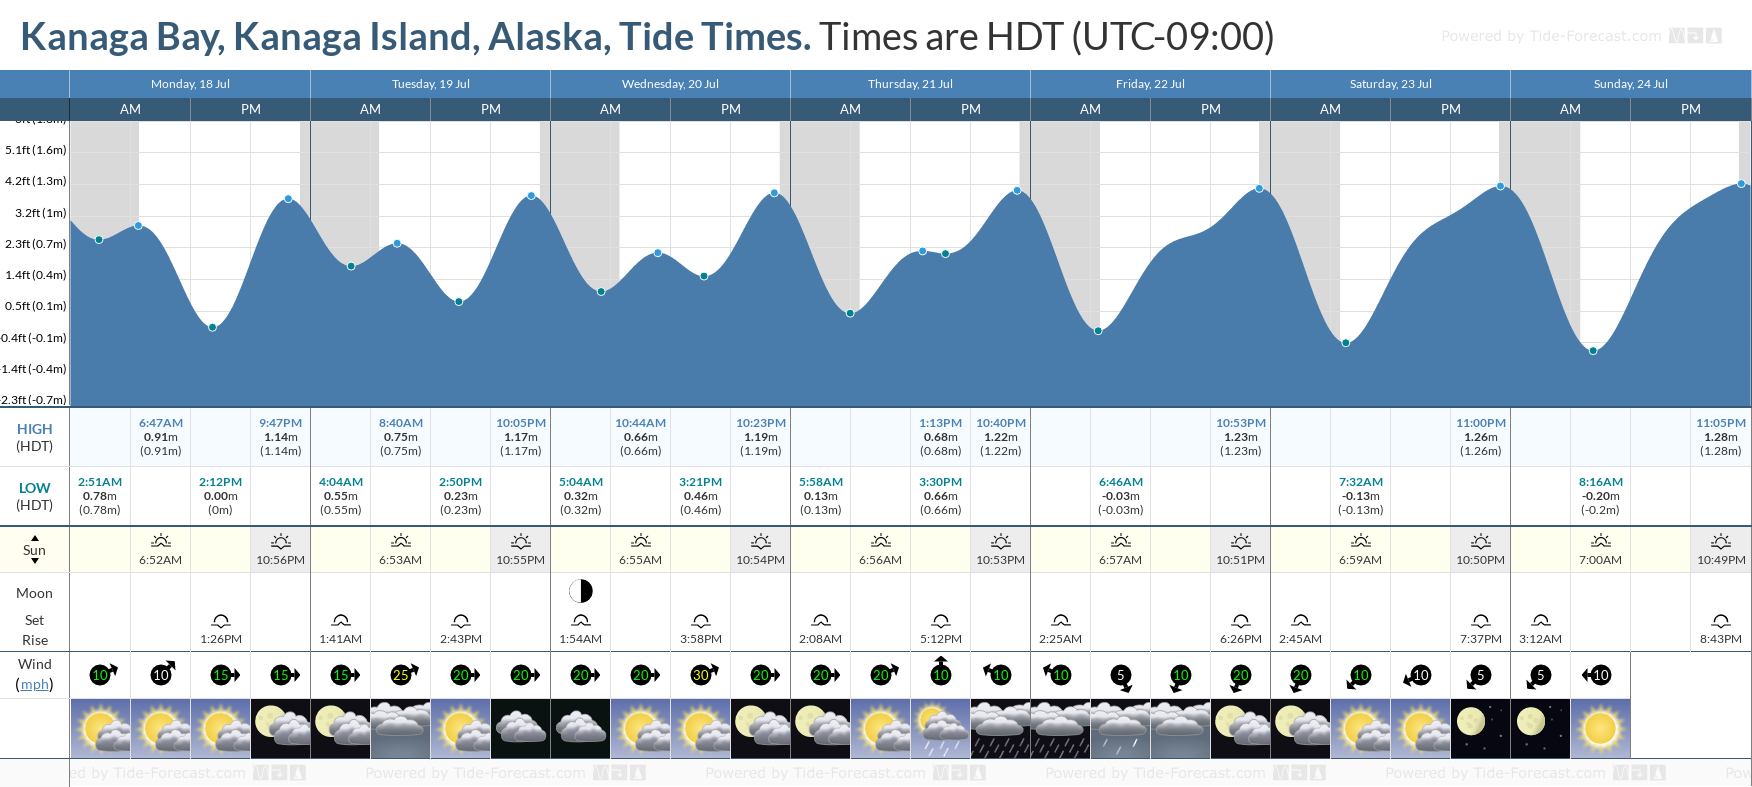 Kanaga Bay, Kanaga Island, Alaska Tide Chart including high and low tide tide times for the next 7 days